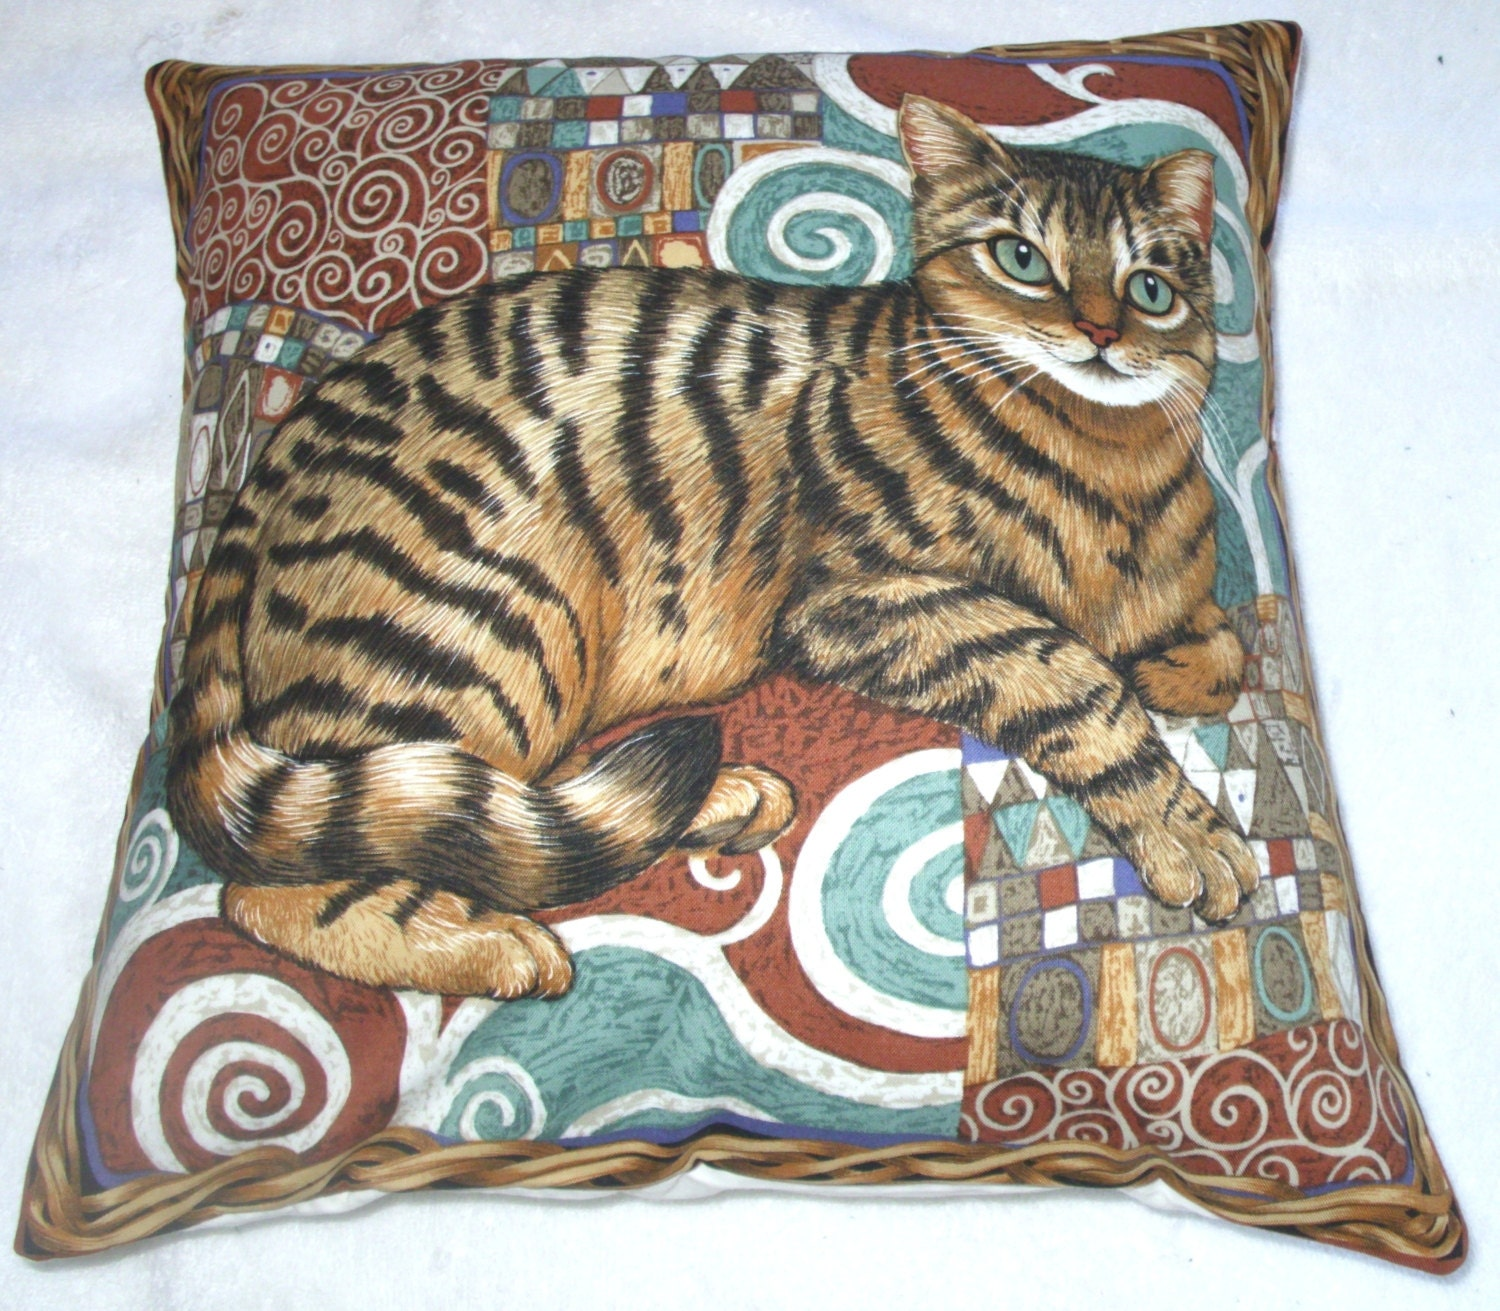 Tabby Cat Sitting On A Mosaic Patterned Rug In A Wicker Basket